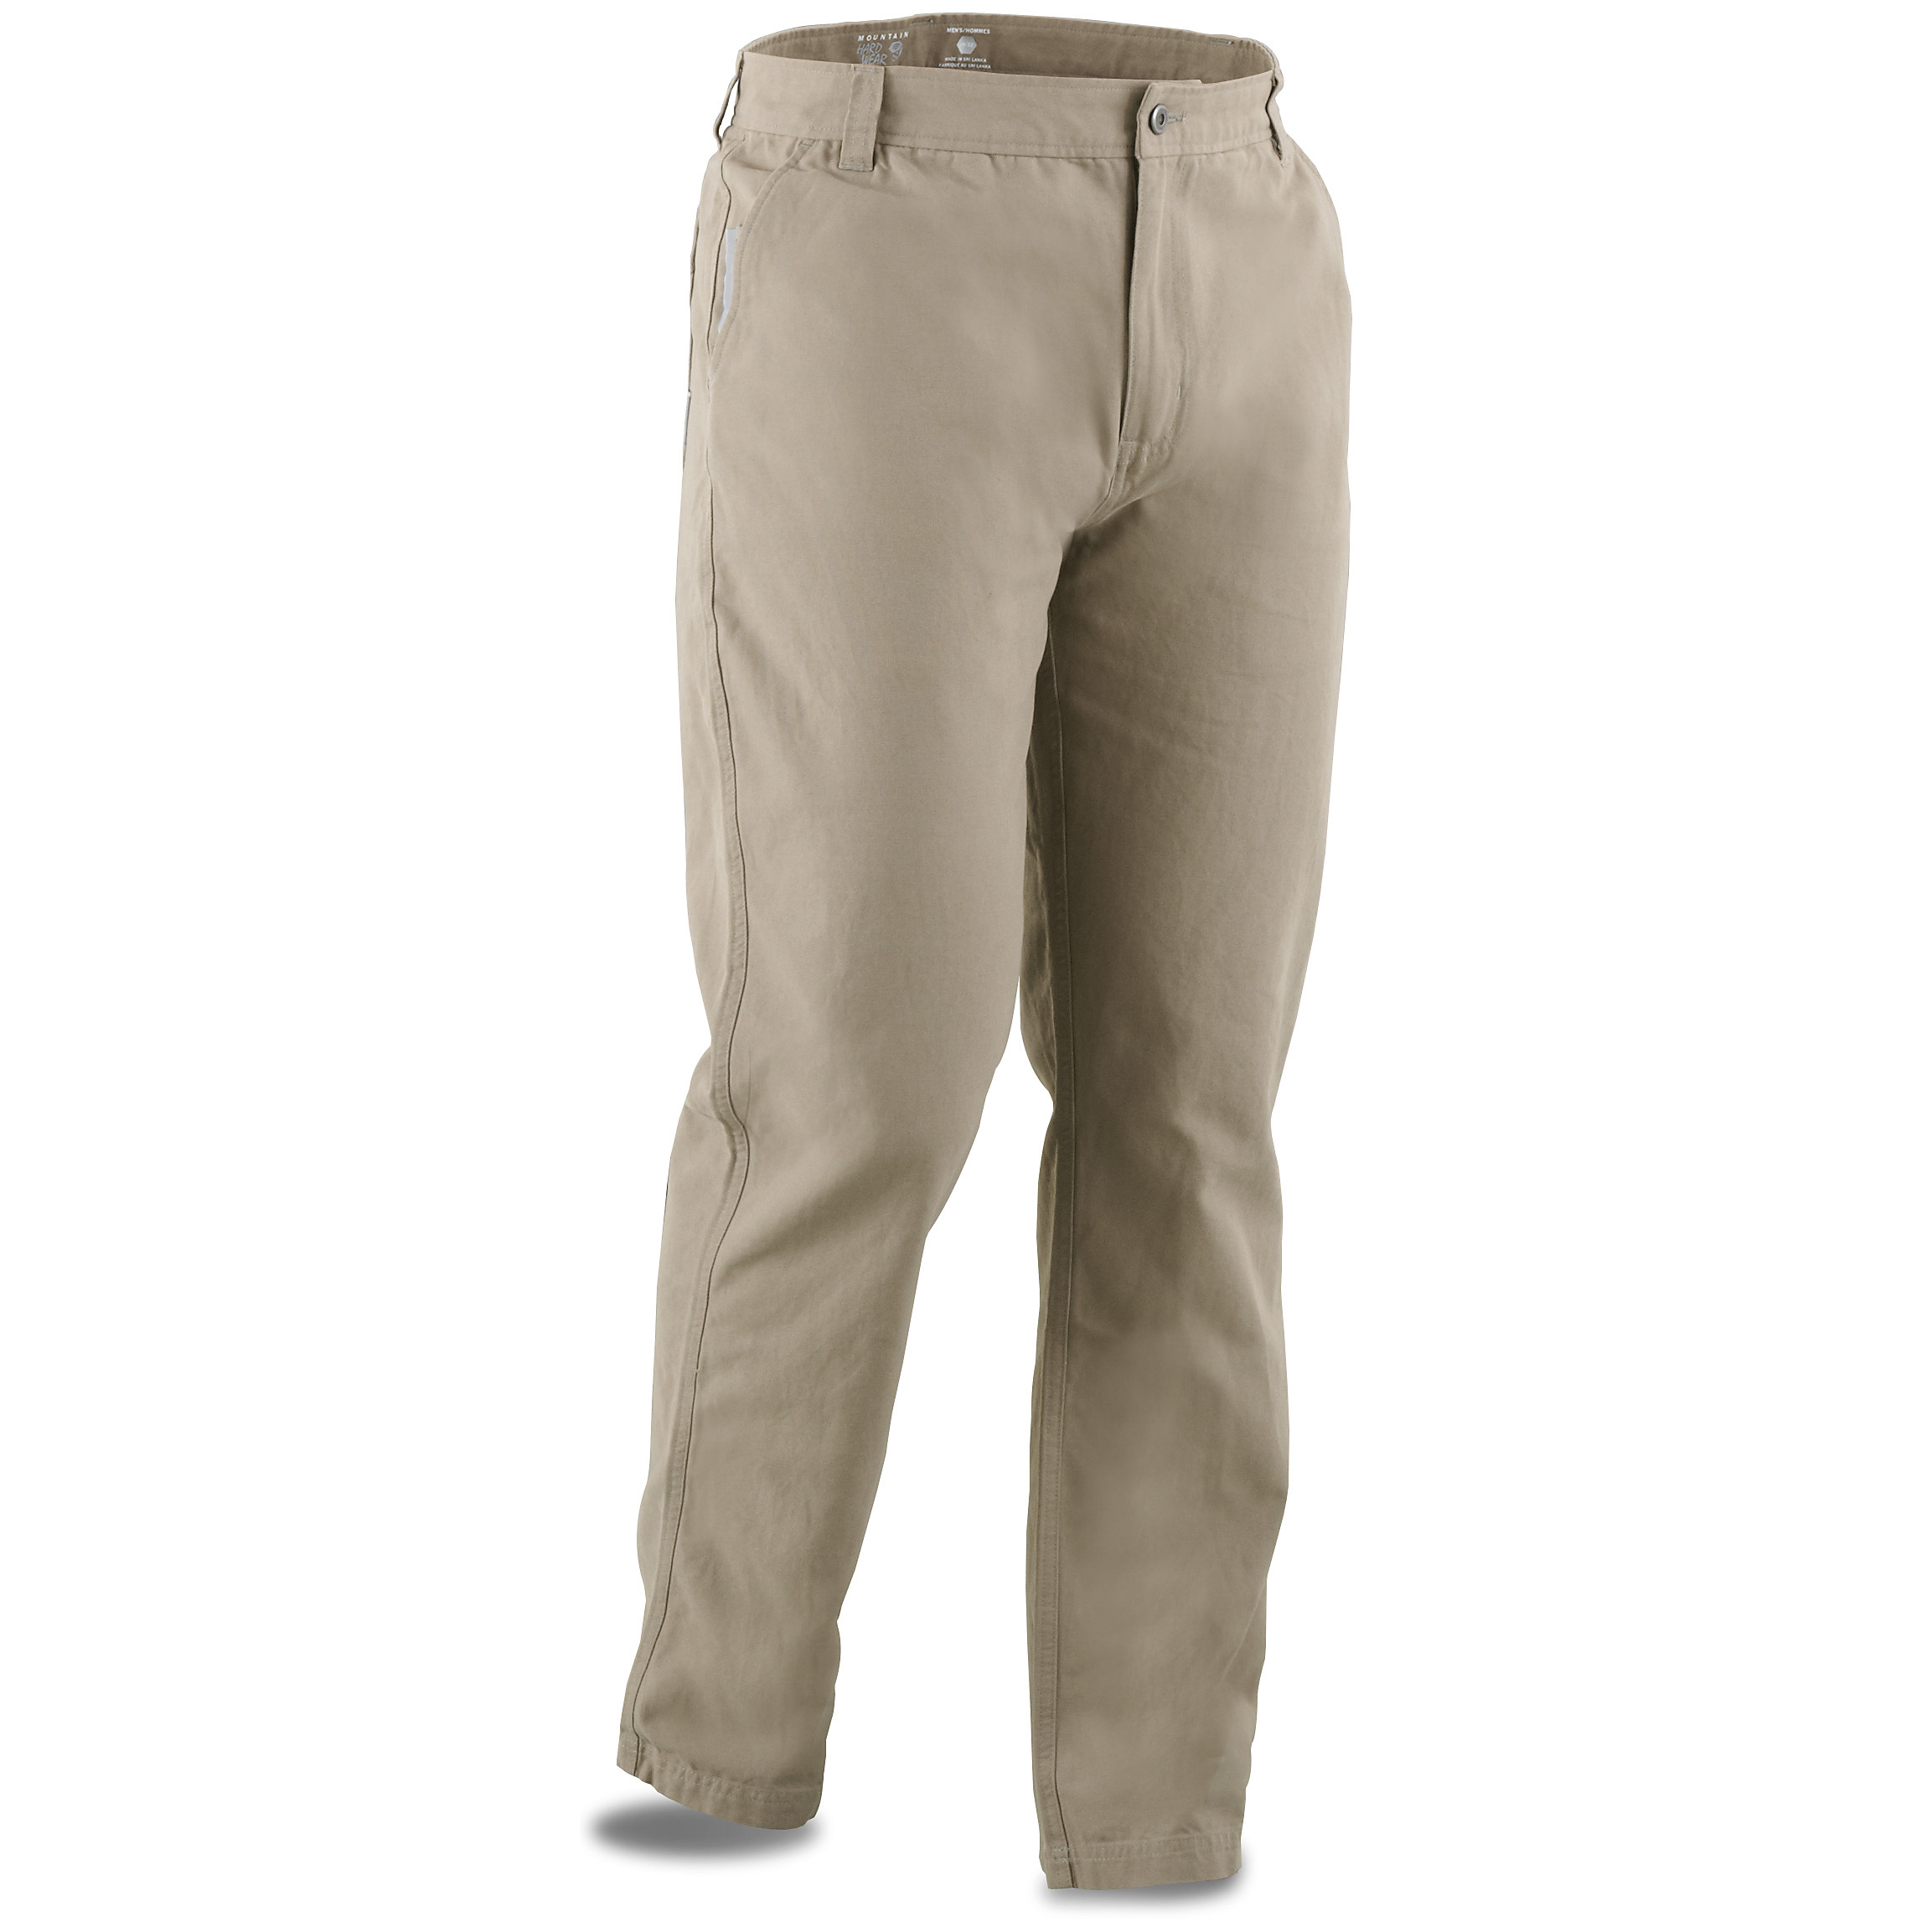 Mountain Hardwear Cordoba Causal Pants offer a stylish look with rugged durability. A classic look with manly man toughness. Slip into these Mountain Hardwear Cordoba Casual pants for work, play, or just relaxing. Durable, cotton-canvas fabric stands up to the rough and rugged lifestyle of a true outdoorsmen, yet looks stylish enough for the office or a night on the town. Plus, the UPF 50 rating helps protect your skin against the sun's harmful rays. Features: 100% cotton outer shell 65/35 polyester / cotton lining for cool comfort UPF 50 rating protects you against the sun's harmful rays 2 front hand pockets (1 with small coin pocket) 2 back pockets Machine wash / dry Imported. State Color and Size, as available in the Shopping Cart. - $49.99